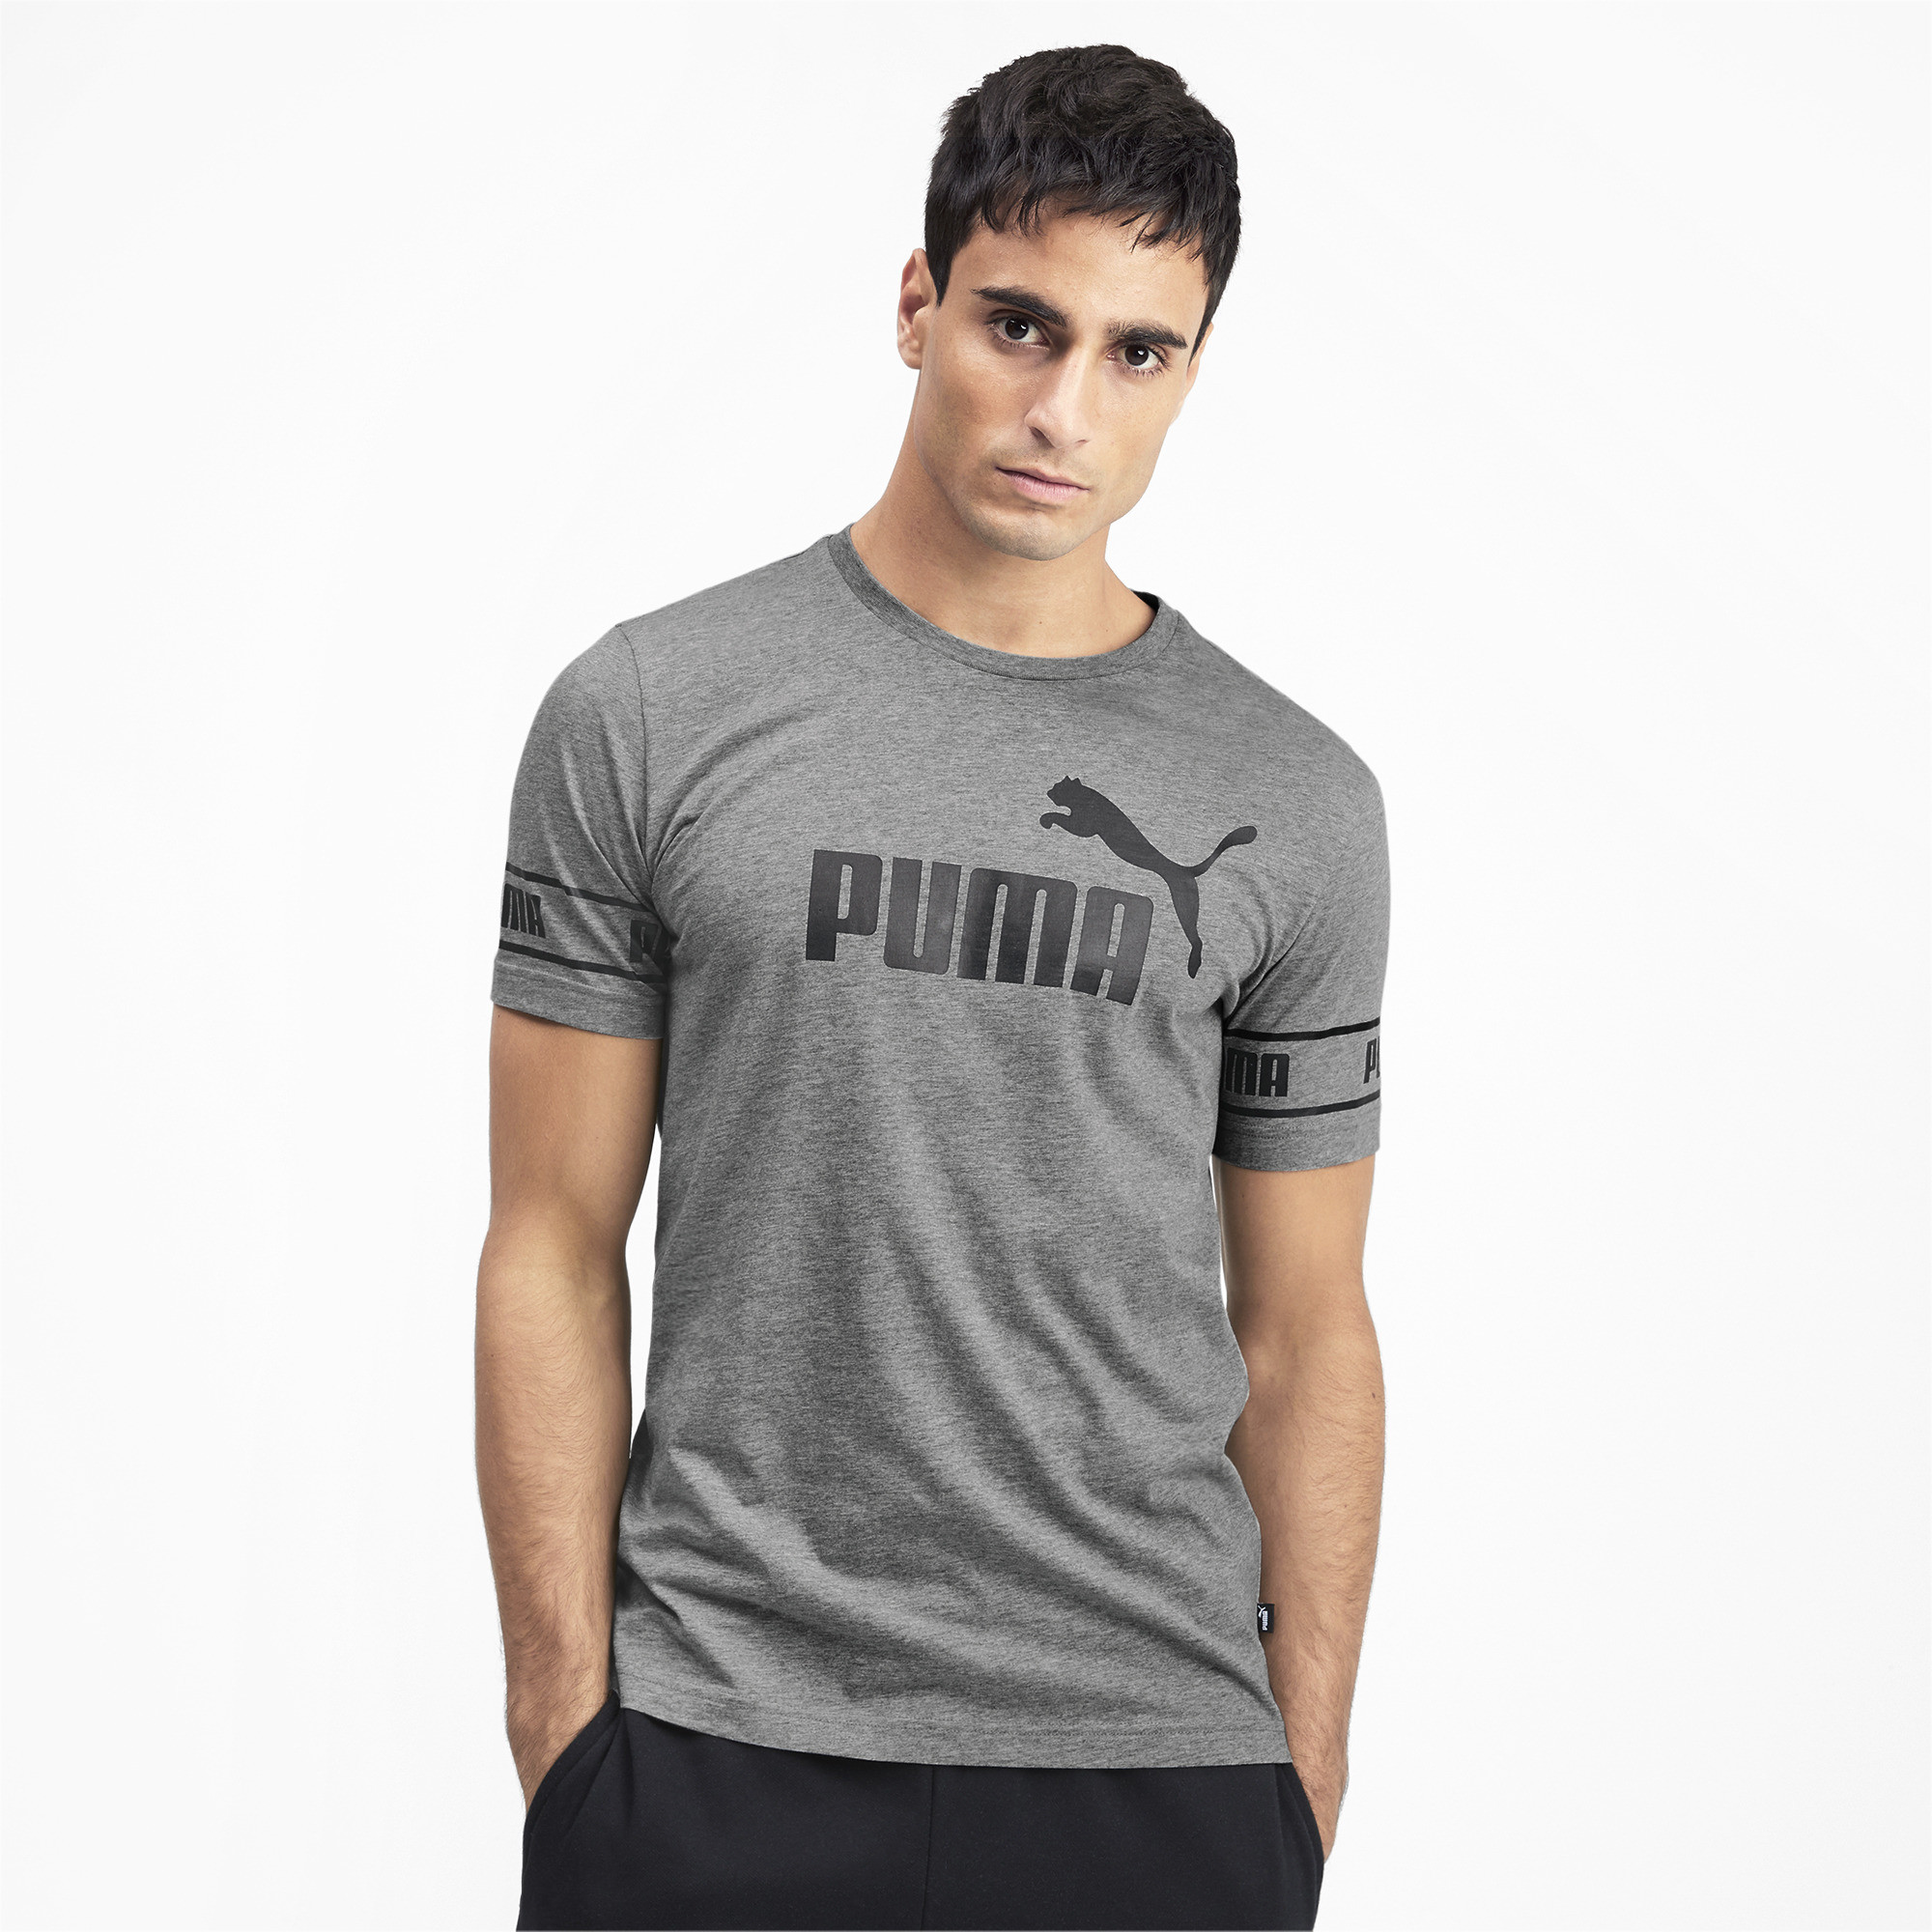 PUMA-Amplified-Men-039-s-Big-Logo-Tee-Men-Tee-Basics thumbnail 9